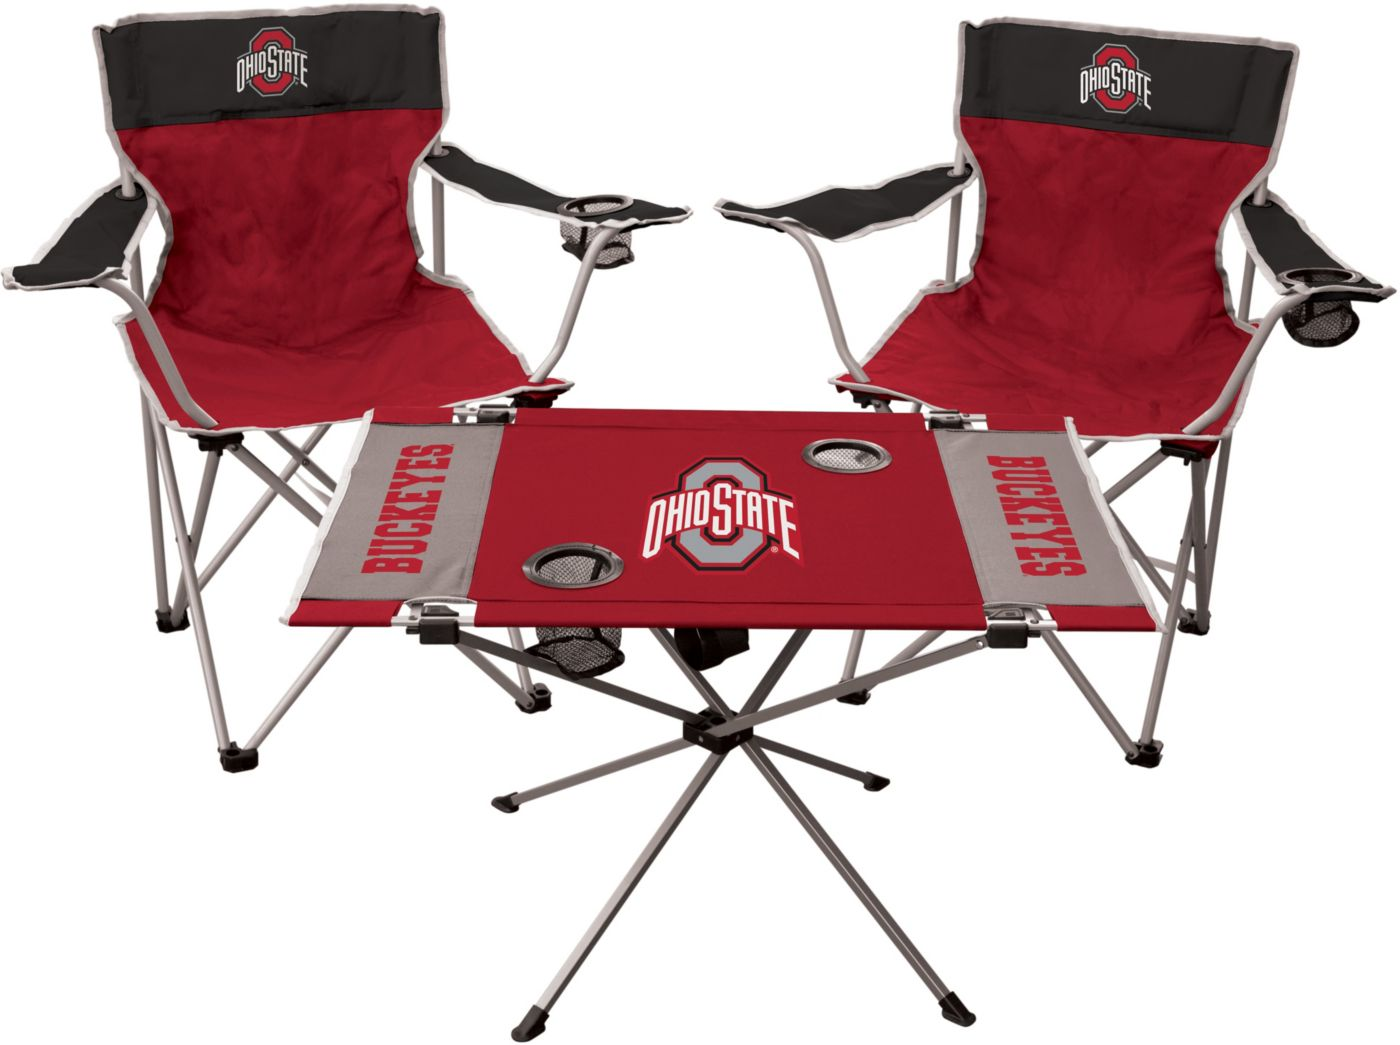 Rawlings Ohio State Buckeyes 3-Piece Tailgate Kit